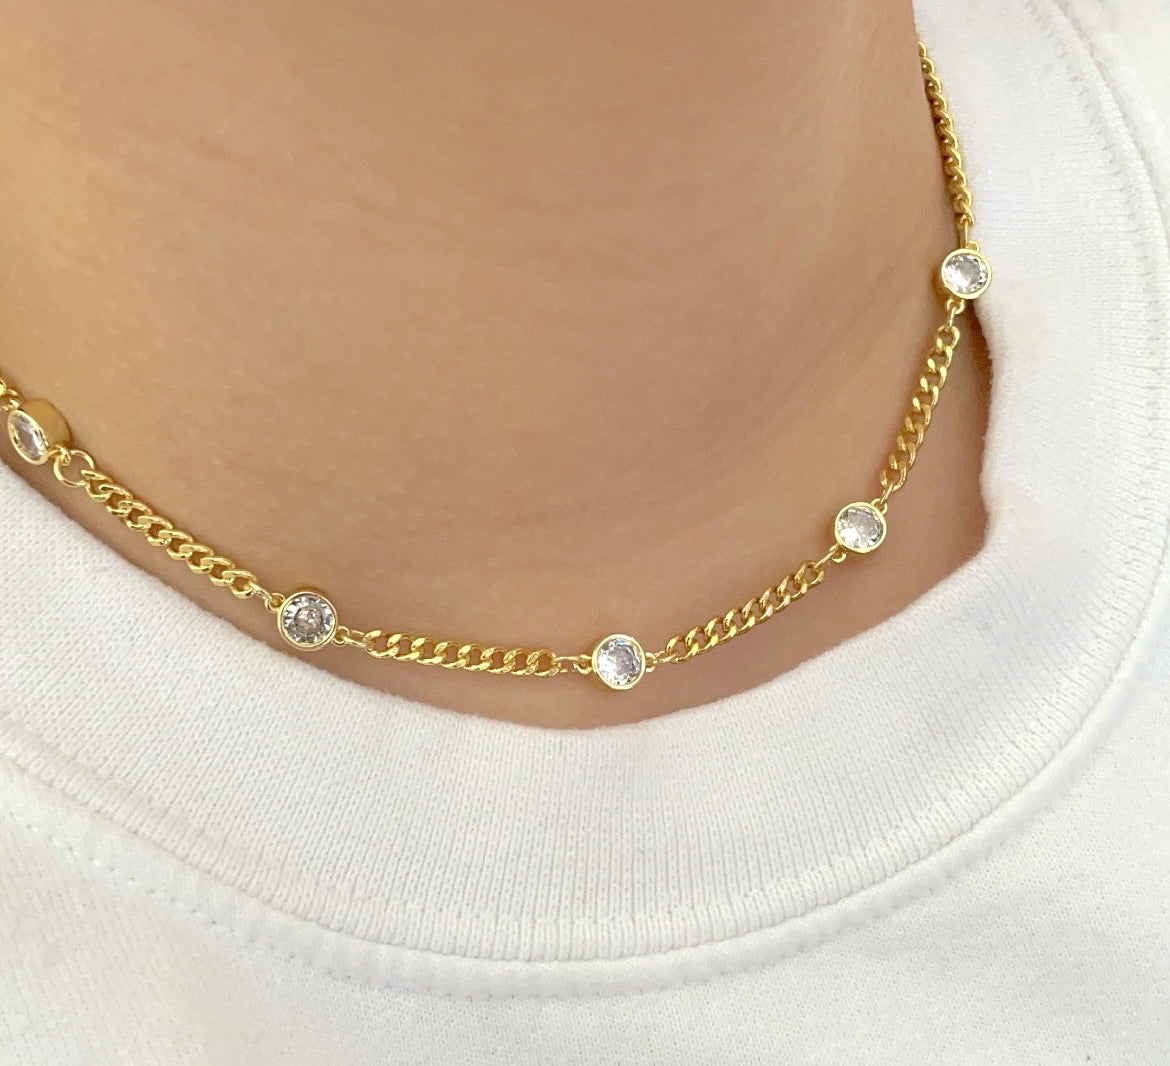 Gold short necklace with clear stones